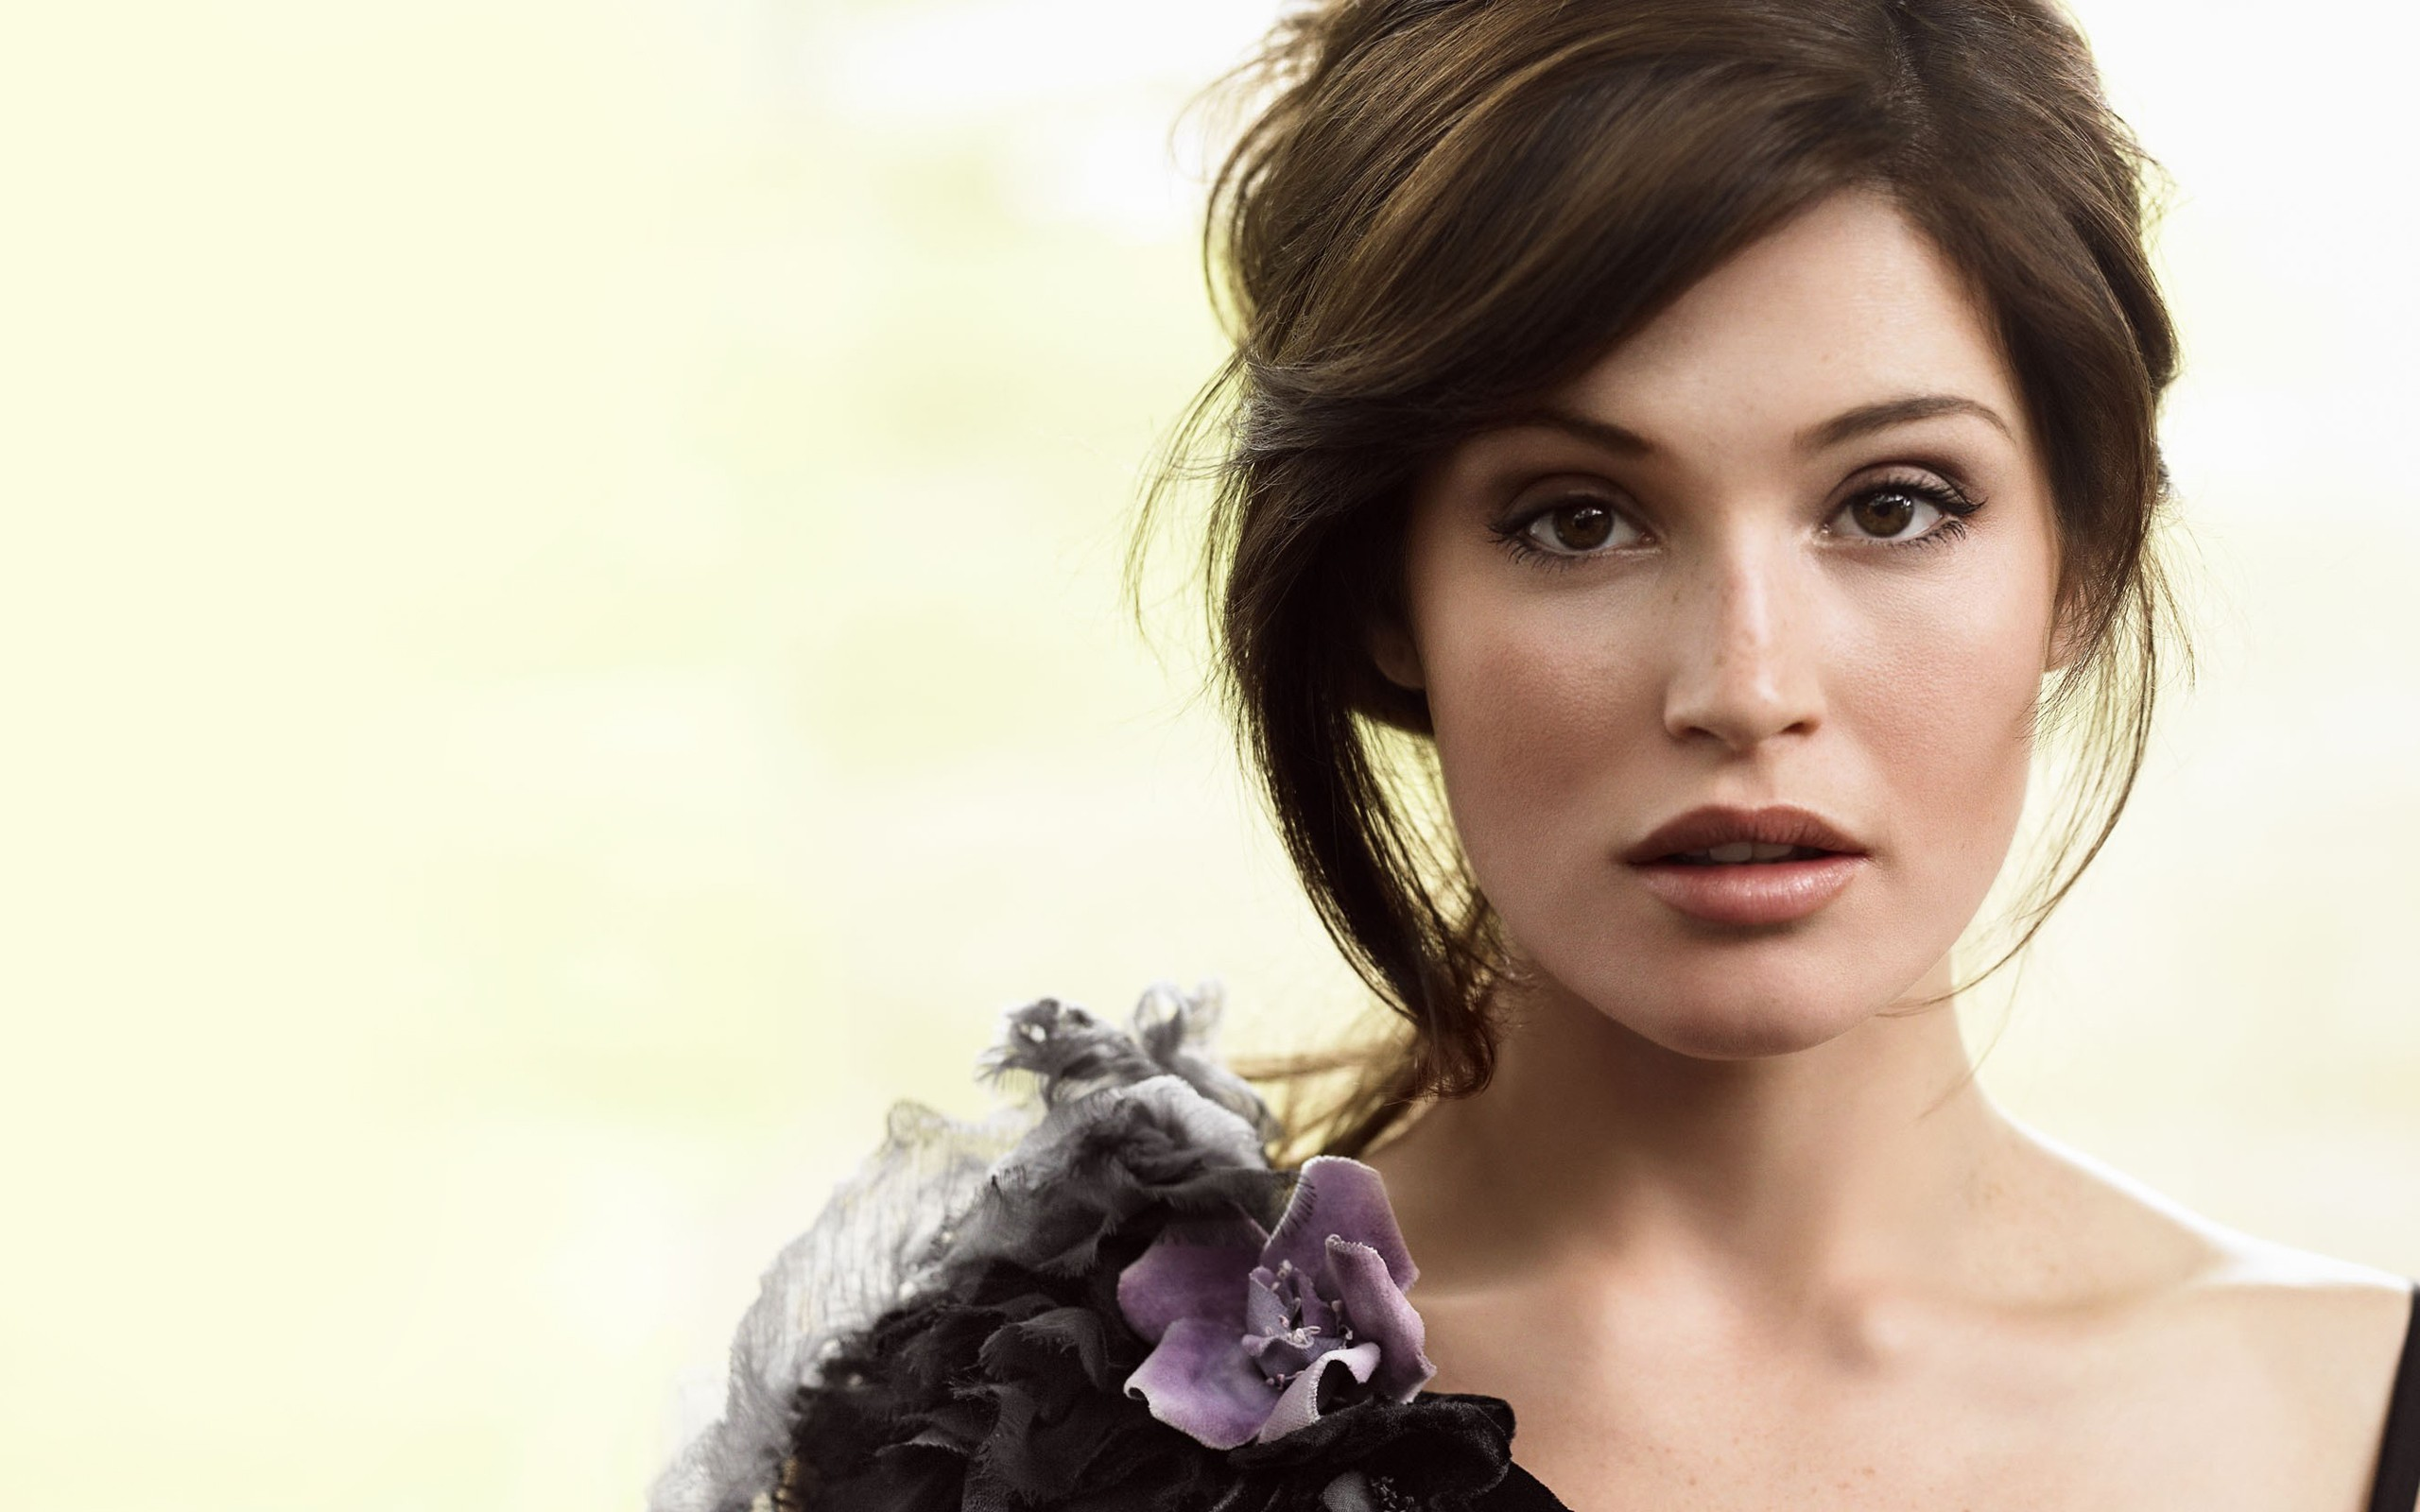 gemma arterton widescreen wallpaper - photo #39